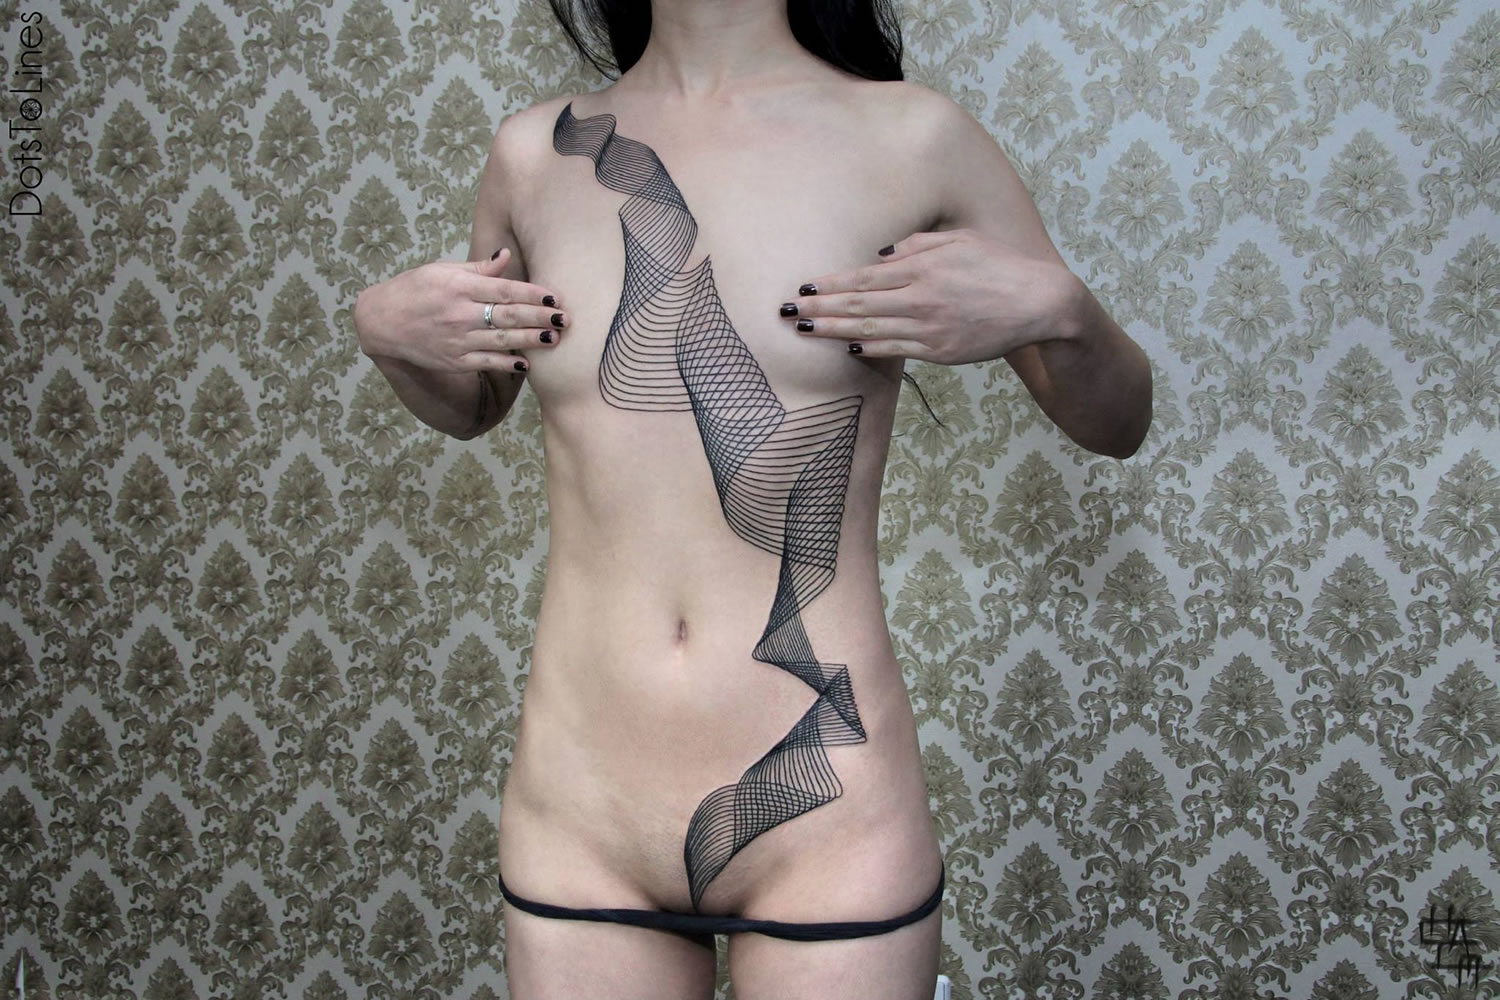 lines in motion, tattoo on female body, by chaim machlev